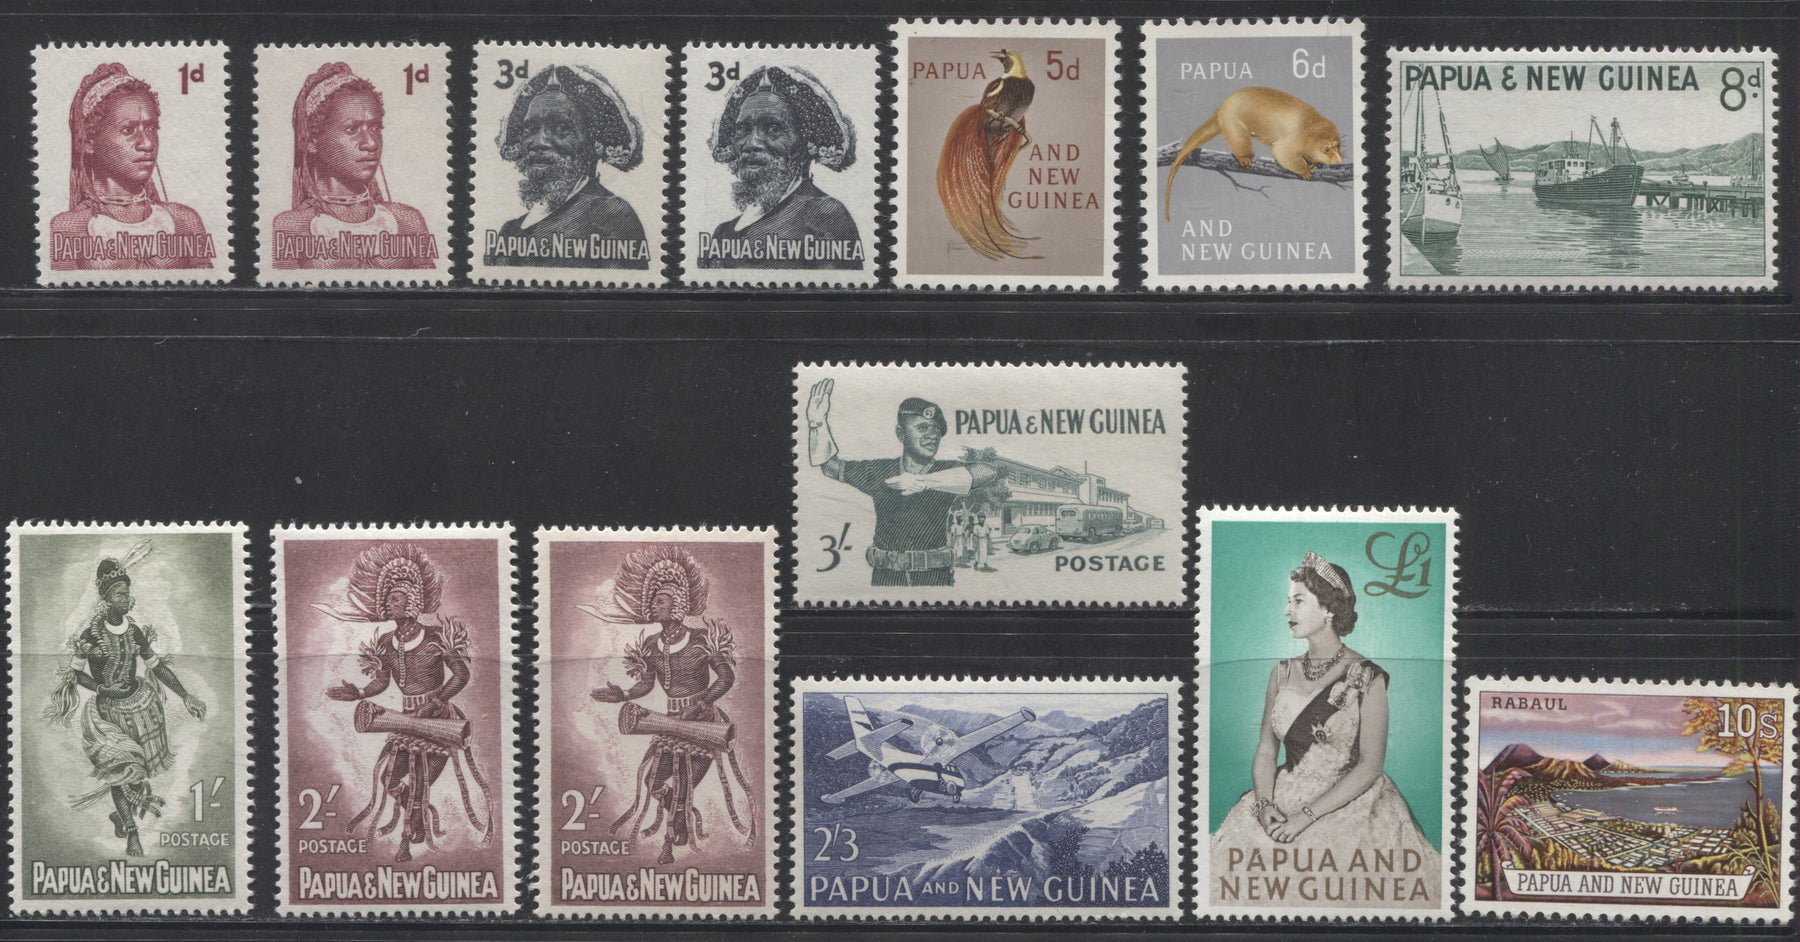 Papua New Guinea #153-163 1d Lake - 1 Pound Multicoloured, 1961-1963 Pictorial Definitive Issue, a Complete VFNH Set Including Extra Shade Varieties